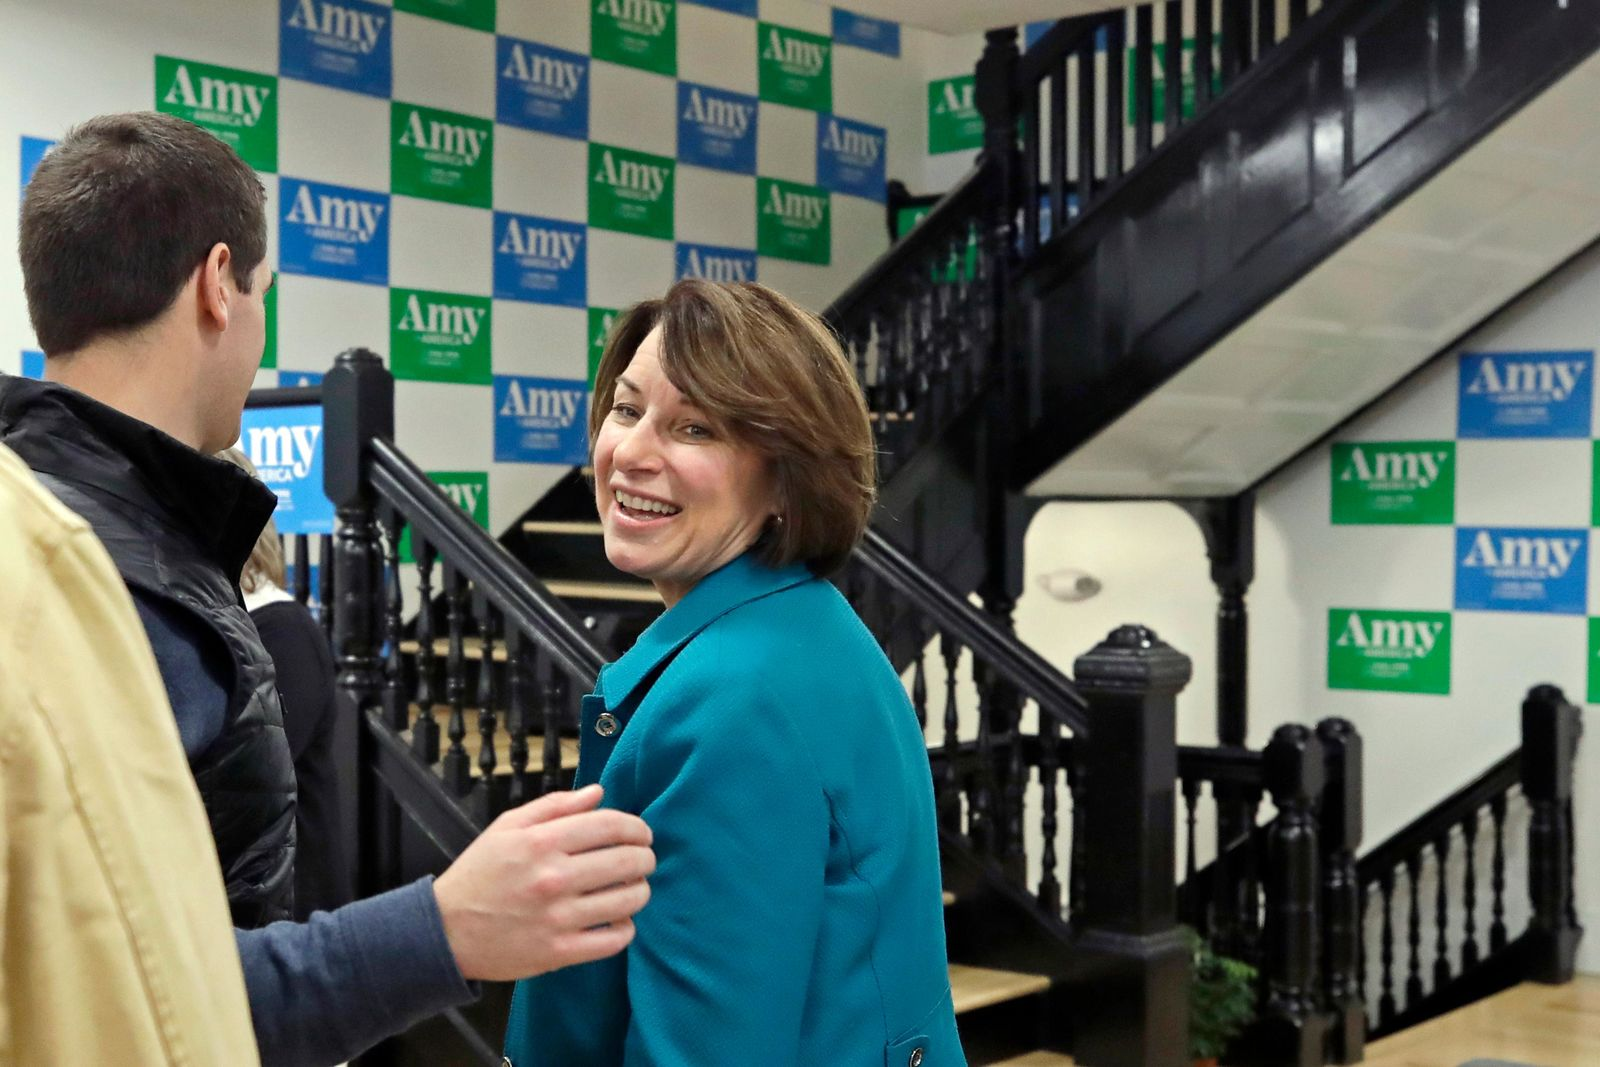 Democratic presidential candidate Sen. Amy Klobuchar, D-Minn., turns to say goodbye on her way out of a campaign event, Tuesday, Dec. 3, 2019, in Milford, N.H. (AP Photo/Elise Amendola)